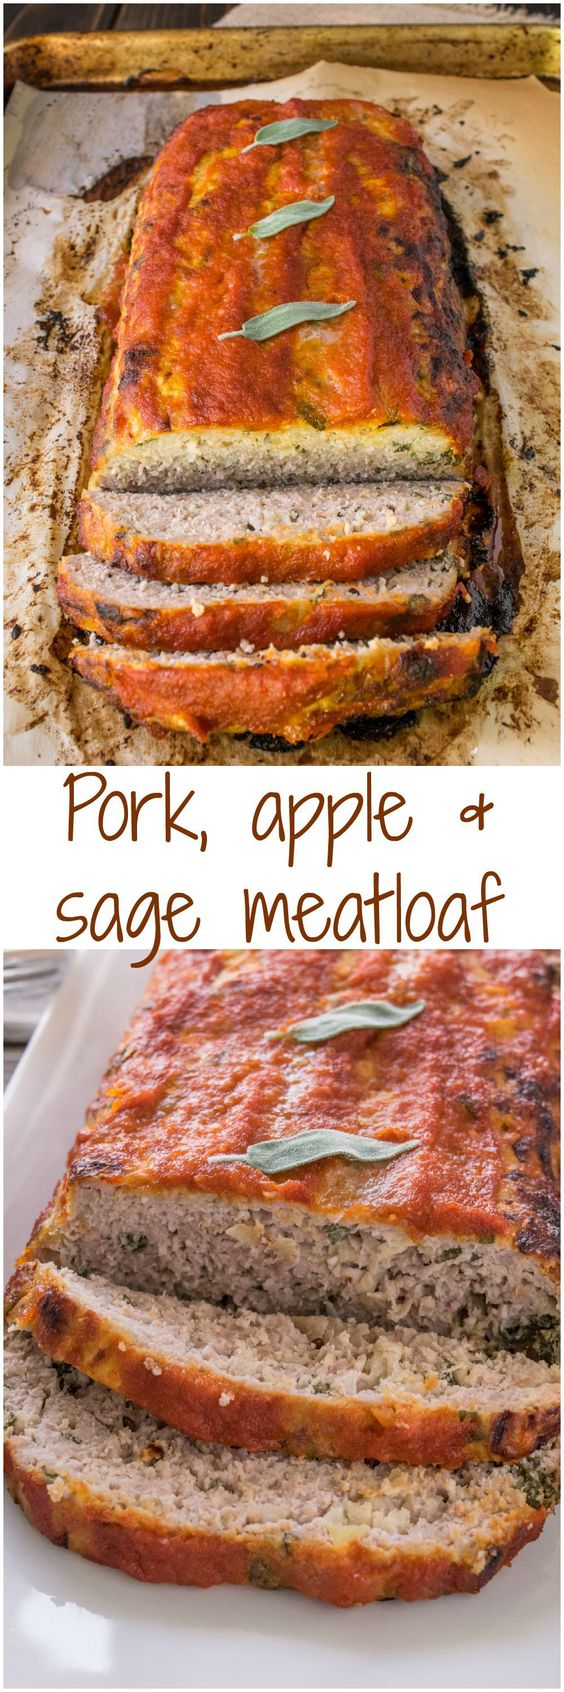 Pork, apple and sage meatloaf. Perfect comfort food with all the flavors of Fall.